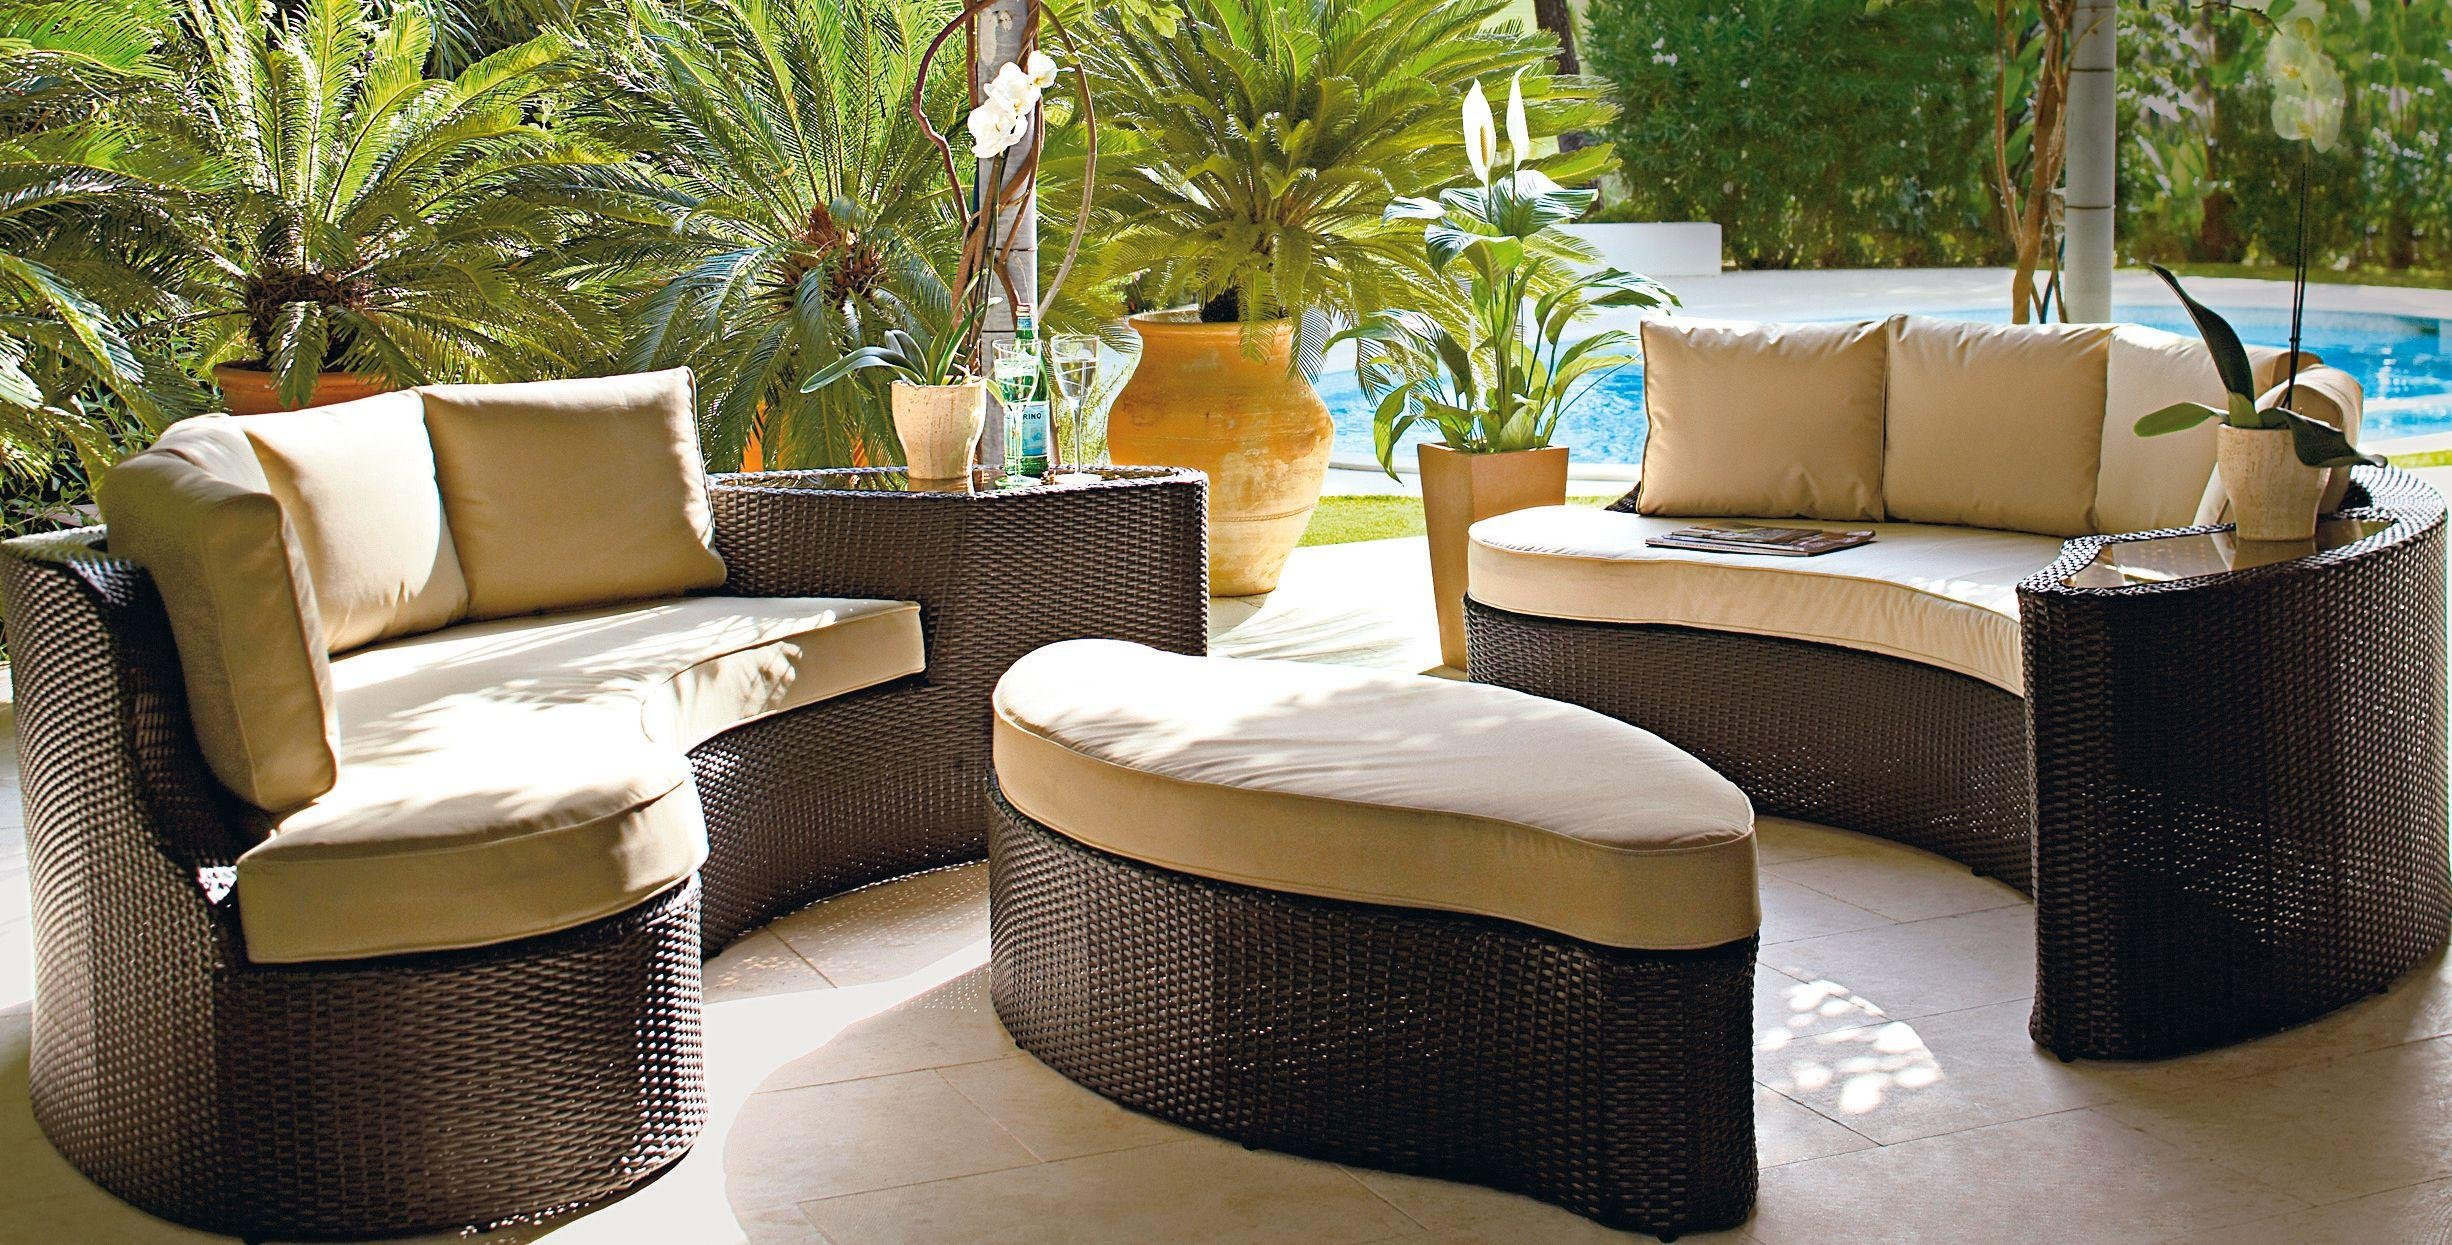 SALE on The Collection - Rattan Effect - 6 Seater Patio ...